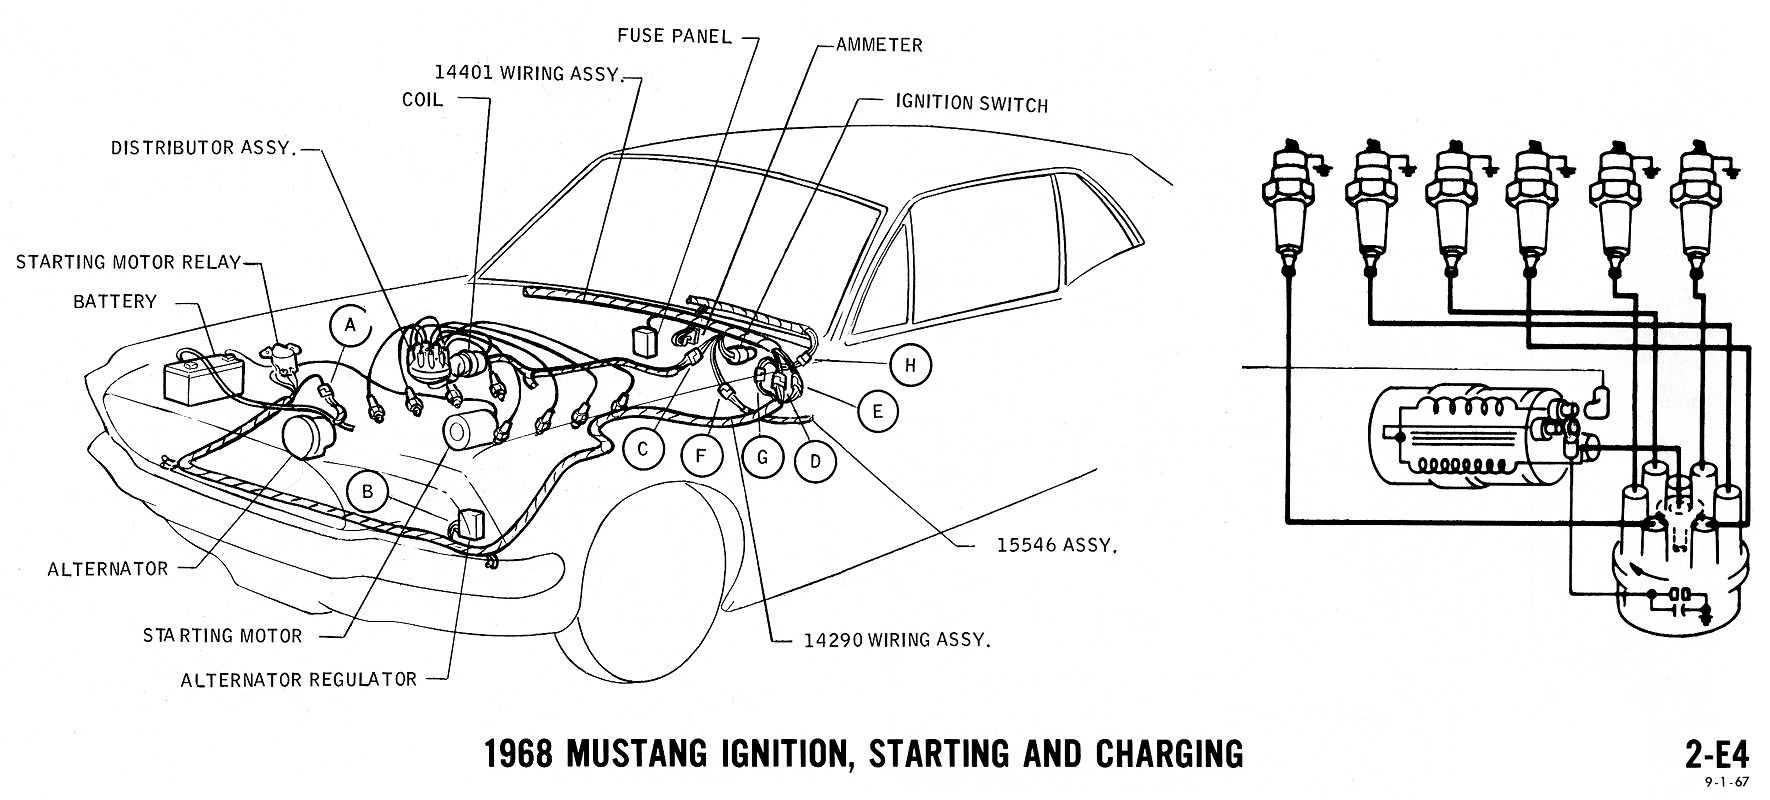 1968 mustang wiring diagrams evolving software rh peterfranza com 1966  Mustang 289 Wiring-Diagram 1966